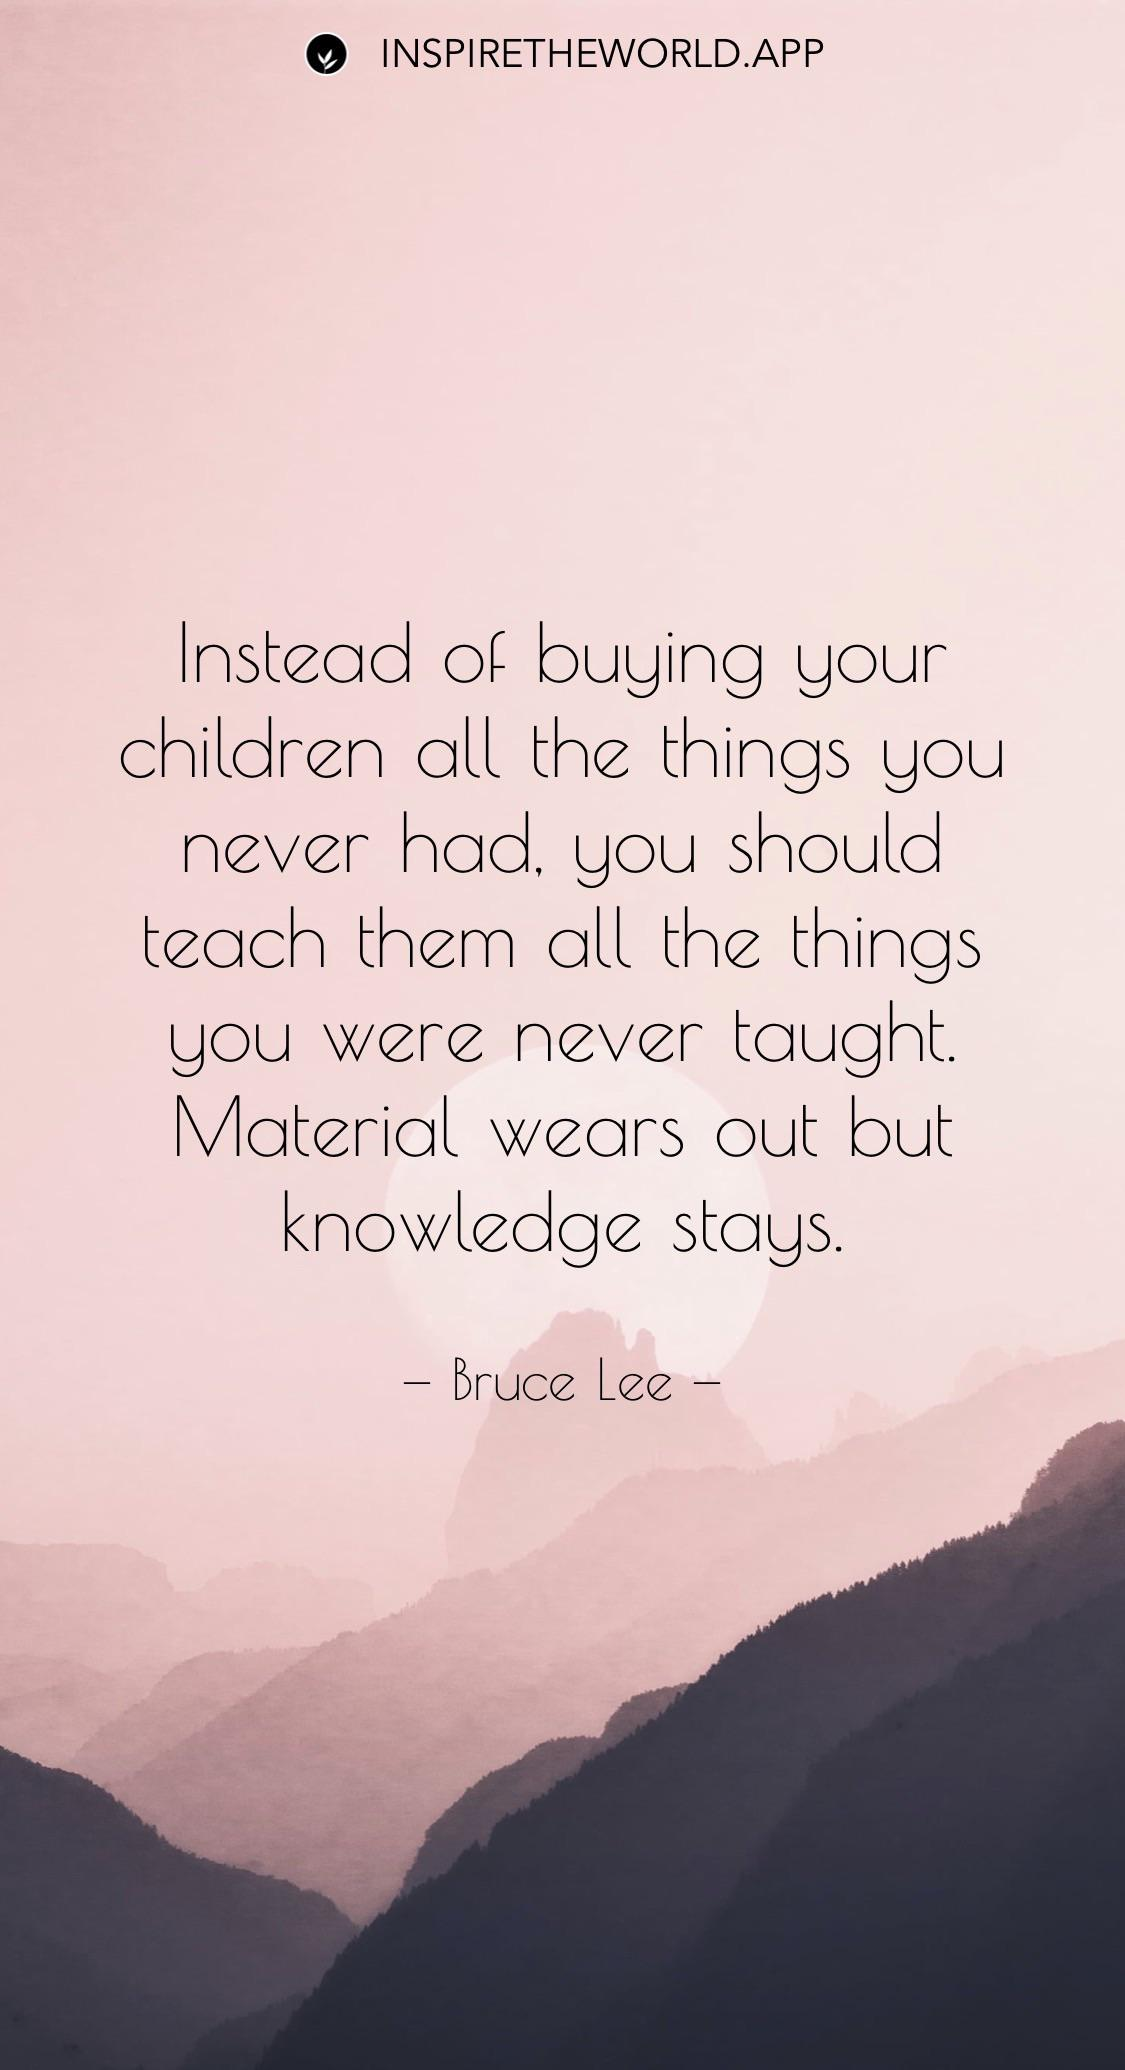 Instead of buying your children all the things you never had, you should teach them all the things you were never taught. Material wears out but knowledge stays. — Bruce Lee [1125 x 2070]